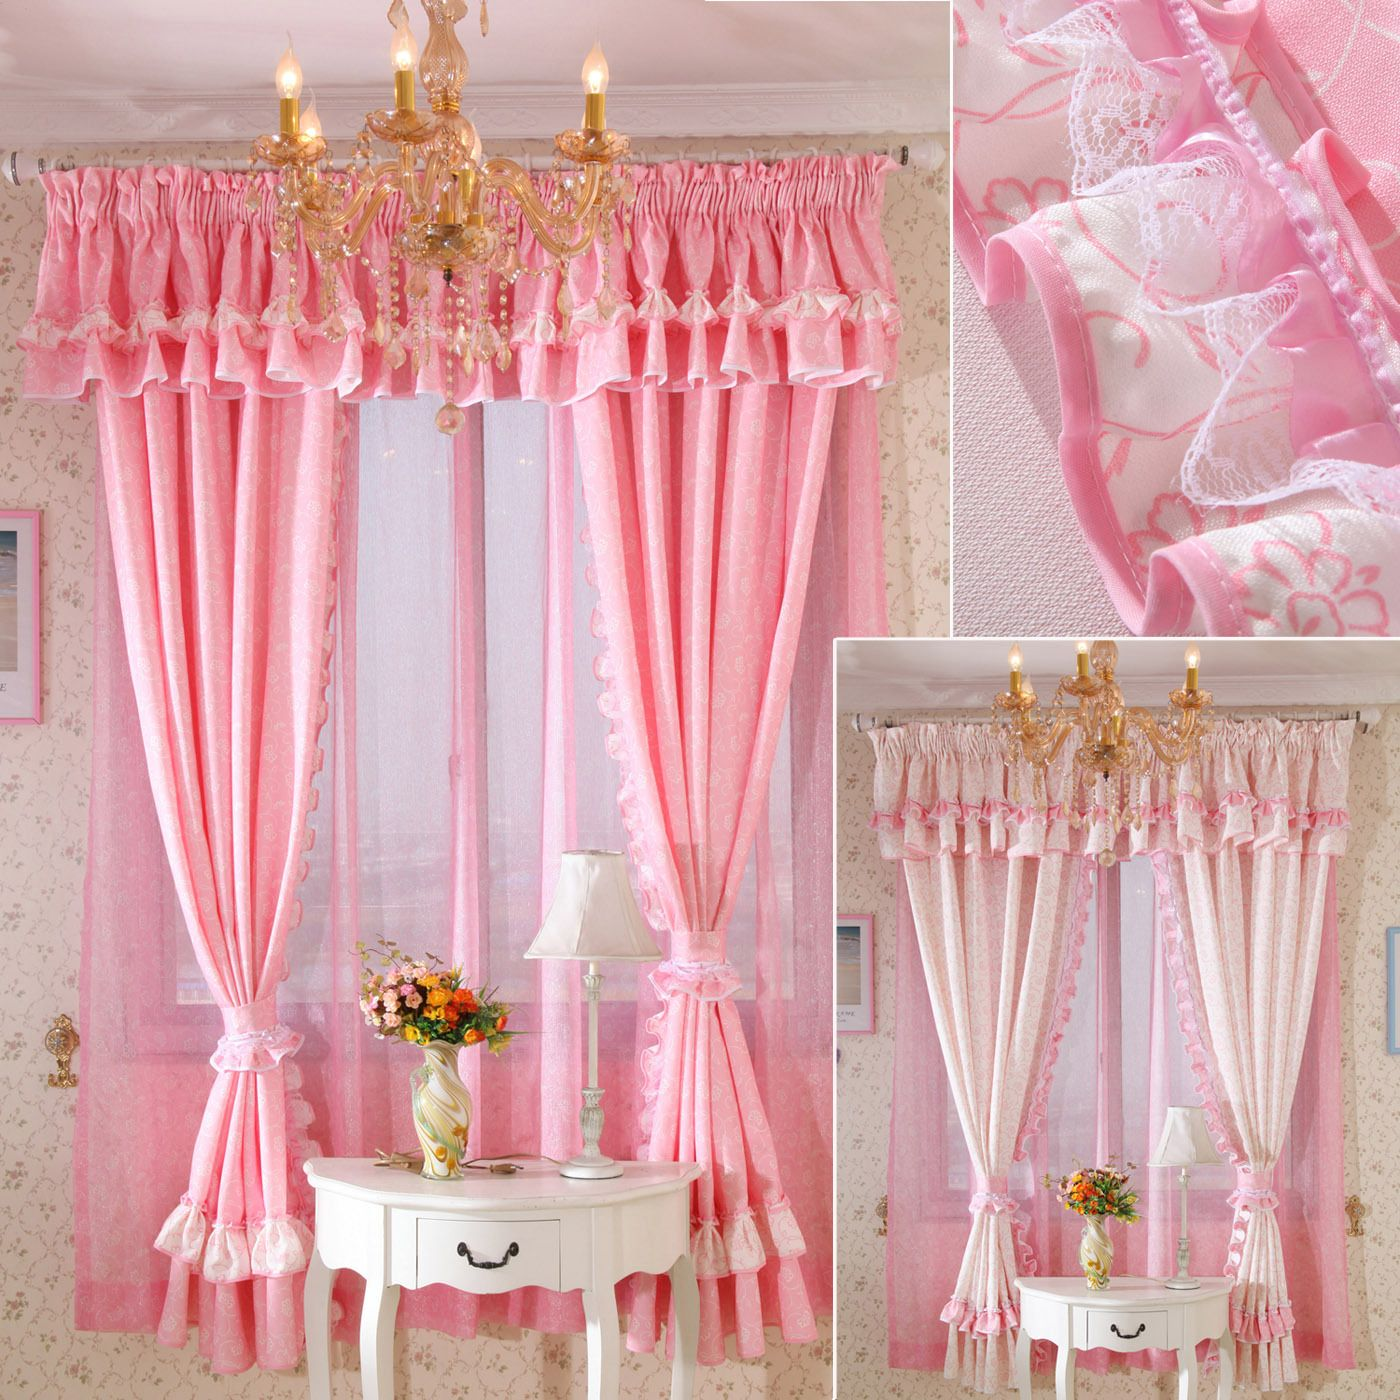 Pin By Irfana Shah On Home Curtain Ideas - Pinterest